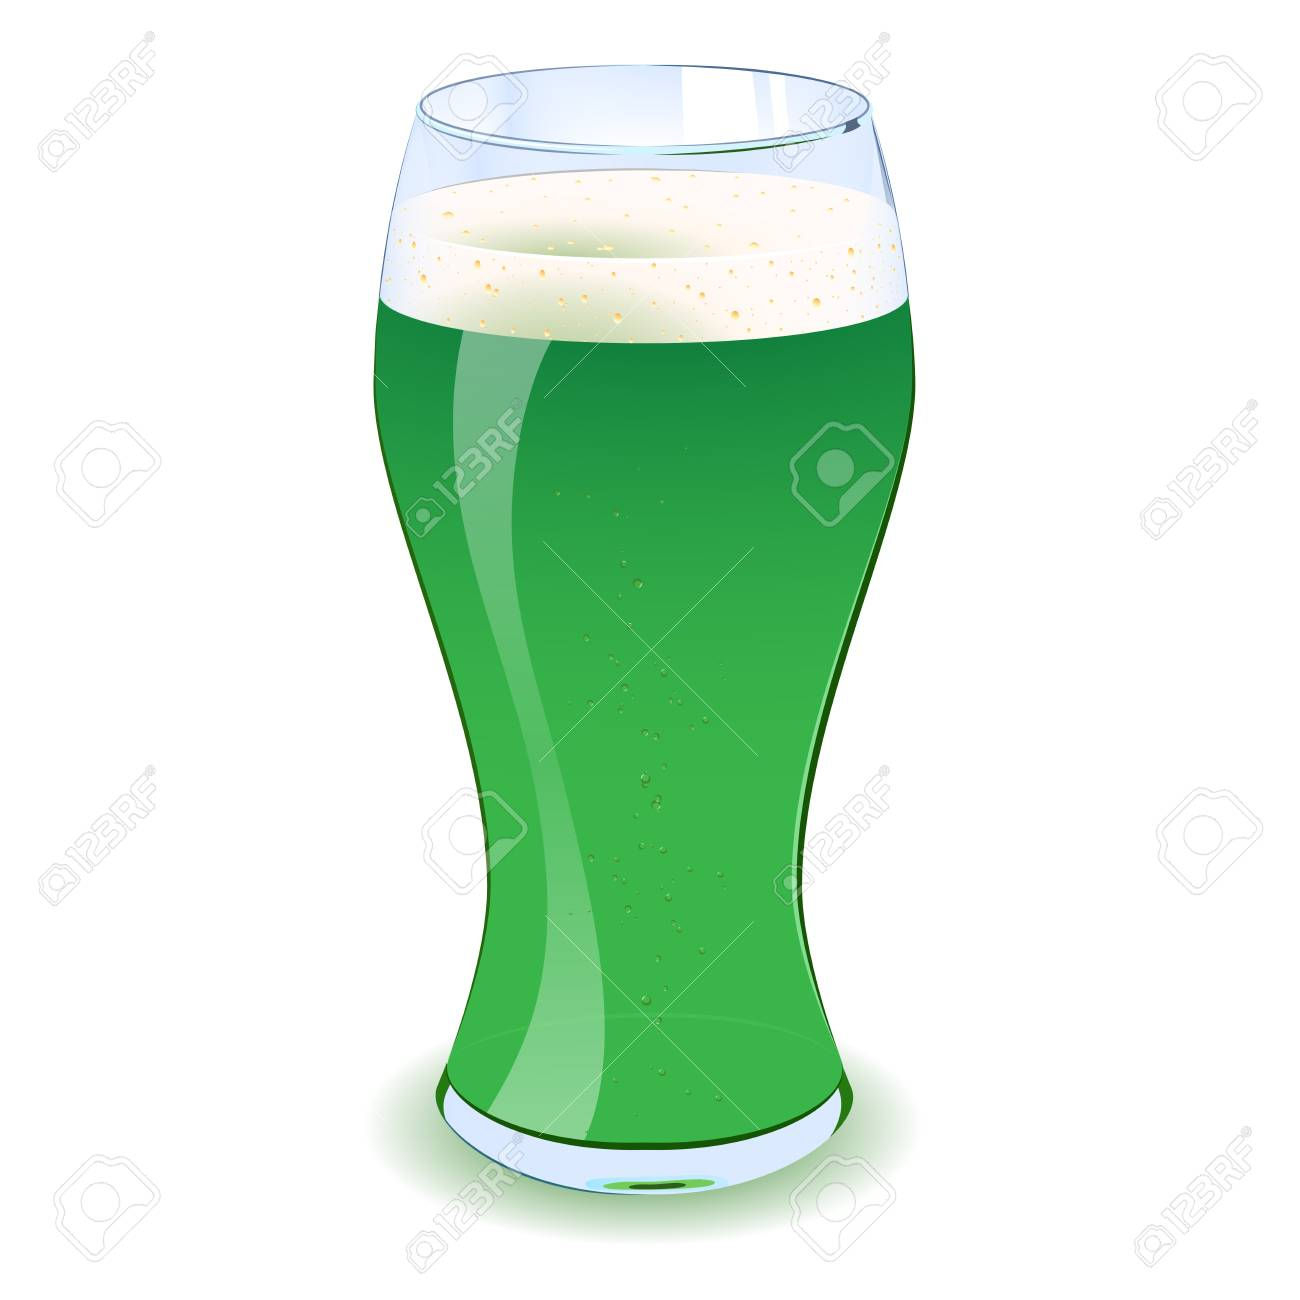 An illustration of a St Patricks green beer with bubbles in it  Eps V10 Stock Vector - 14307931